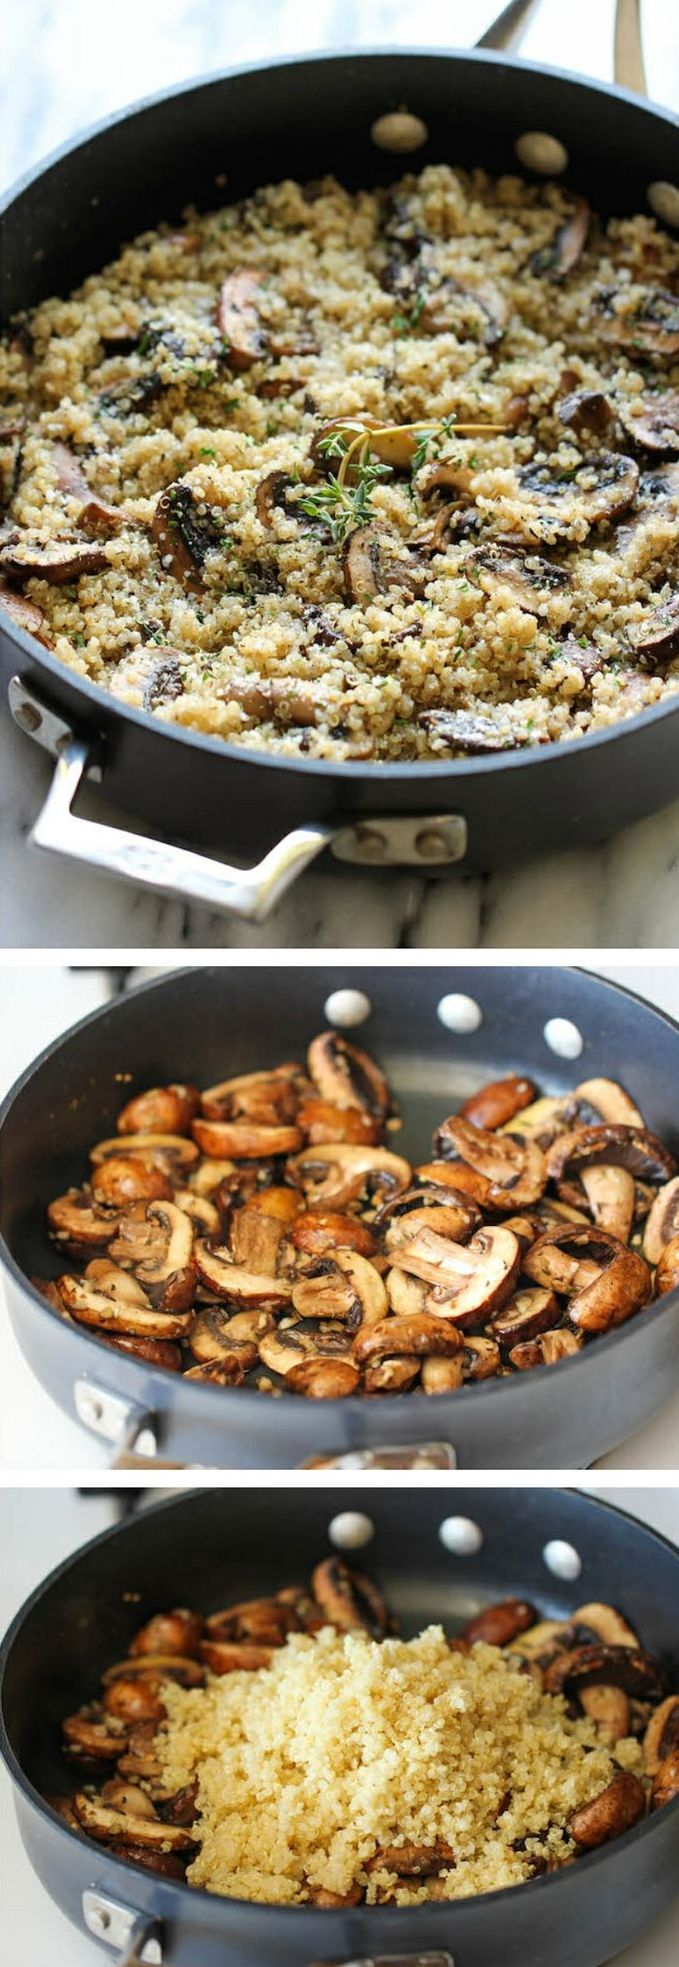 Easy mushroom recipes side dish